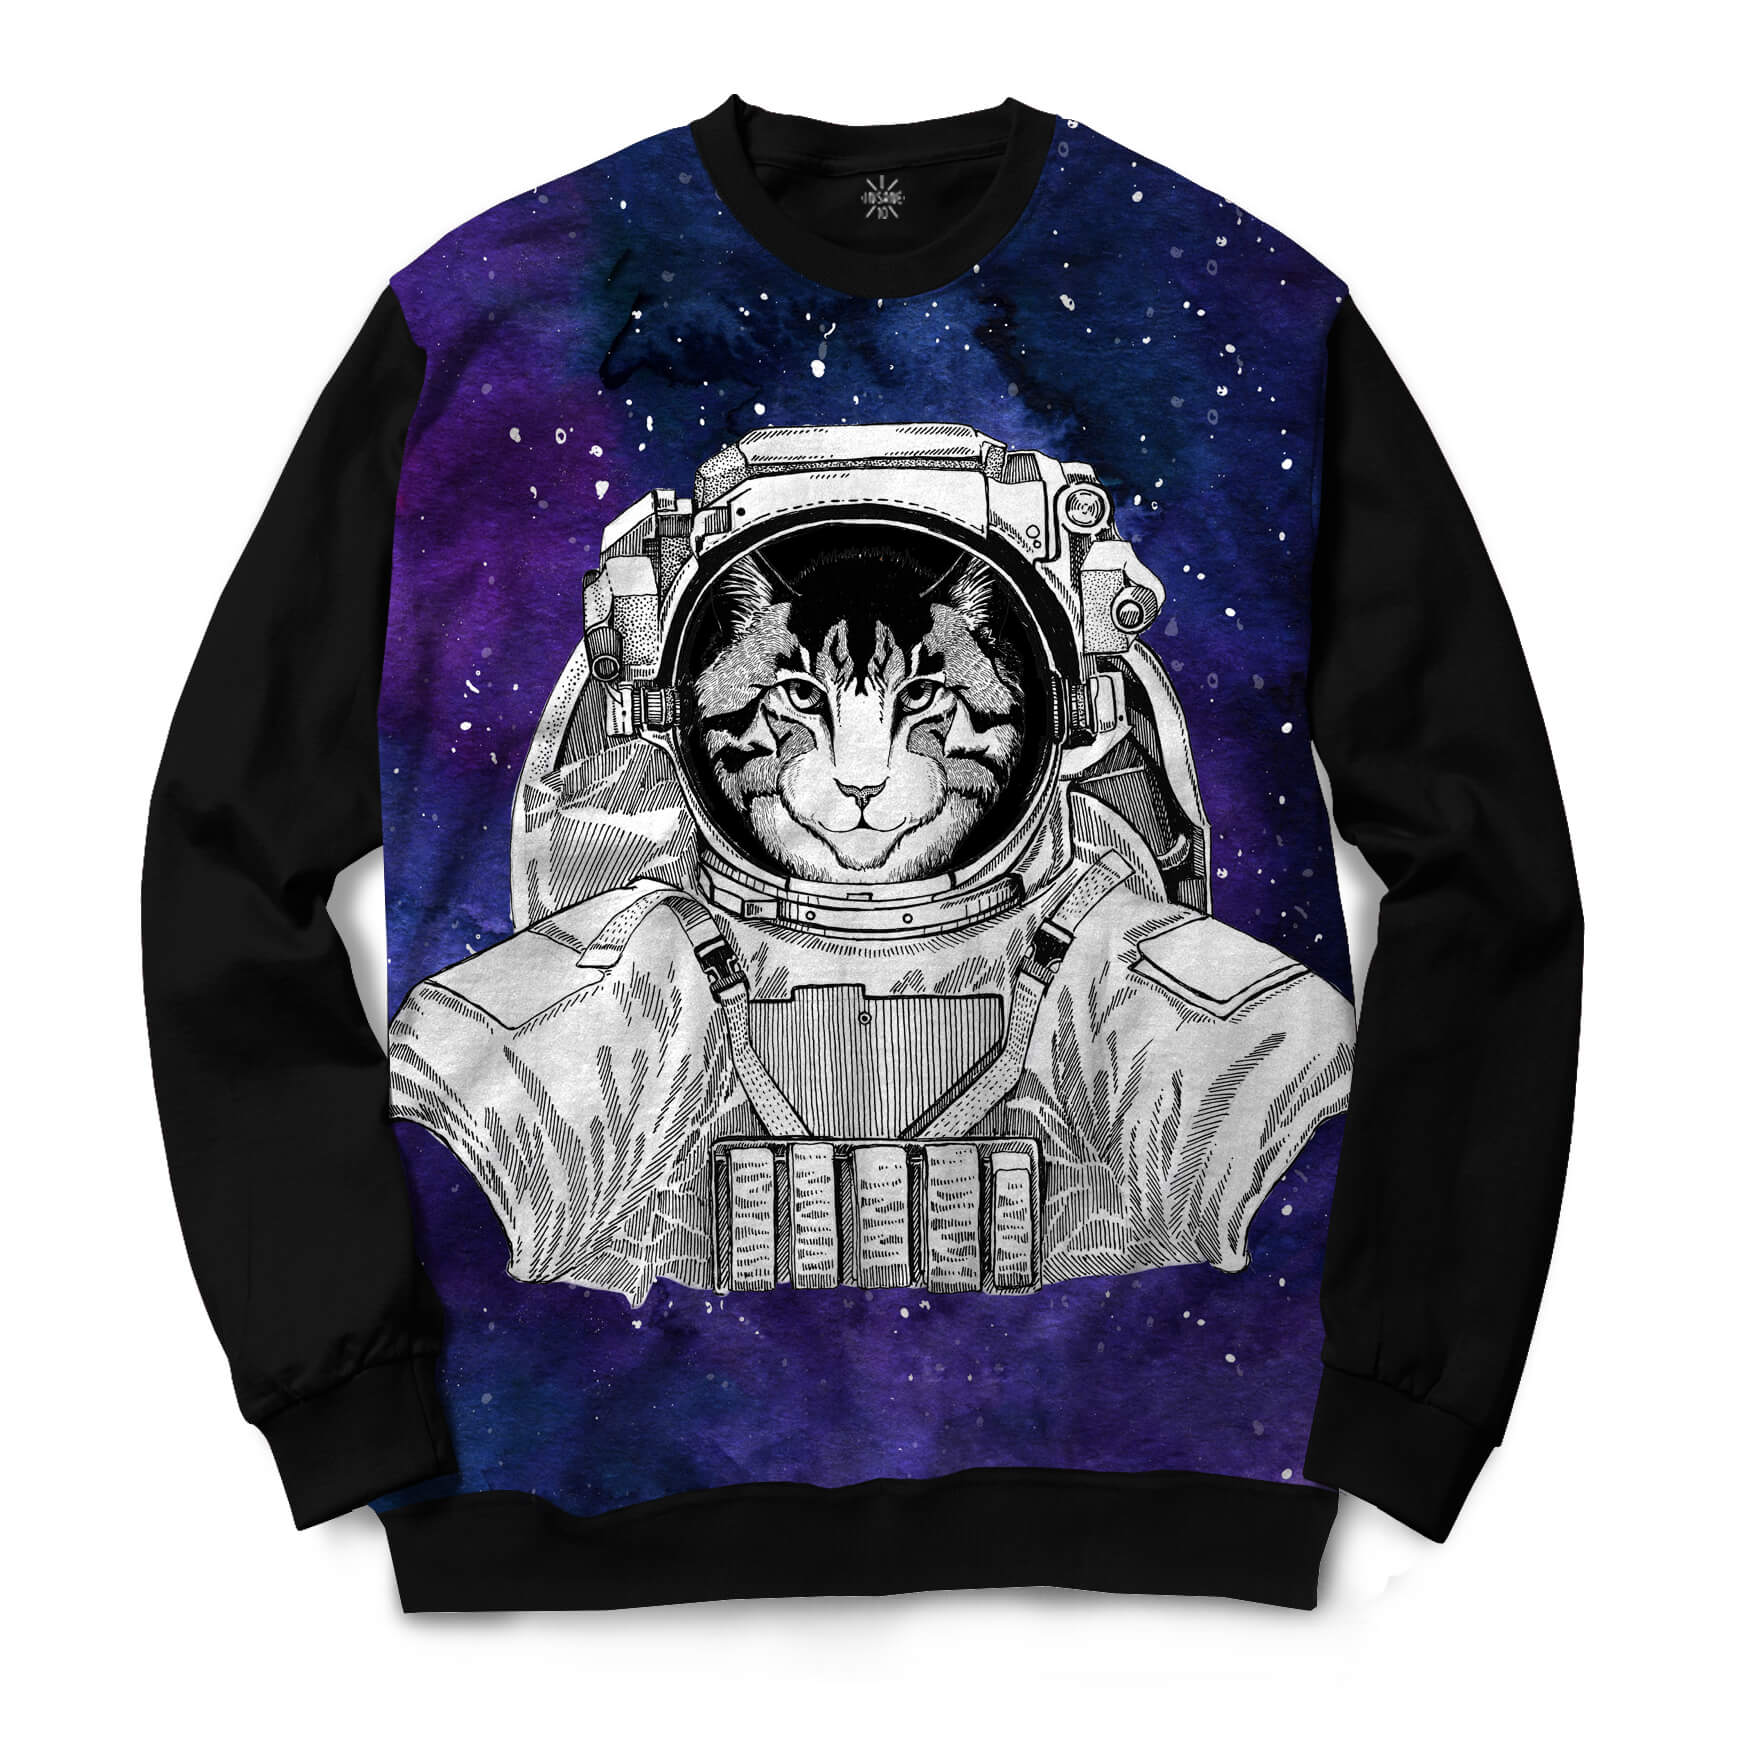 Moletom Gola Careca Insane 10 Animal Astronauta Gato no Espaço Full Print Preto